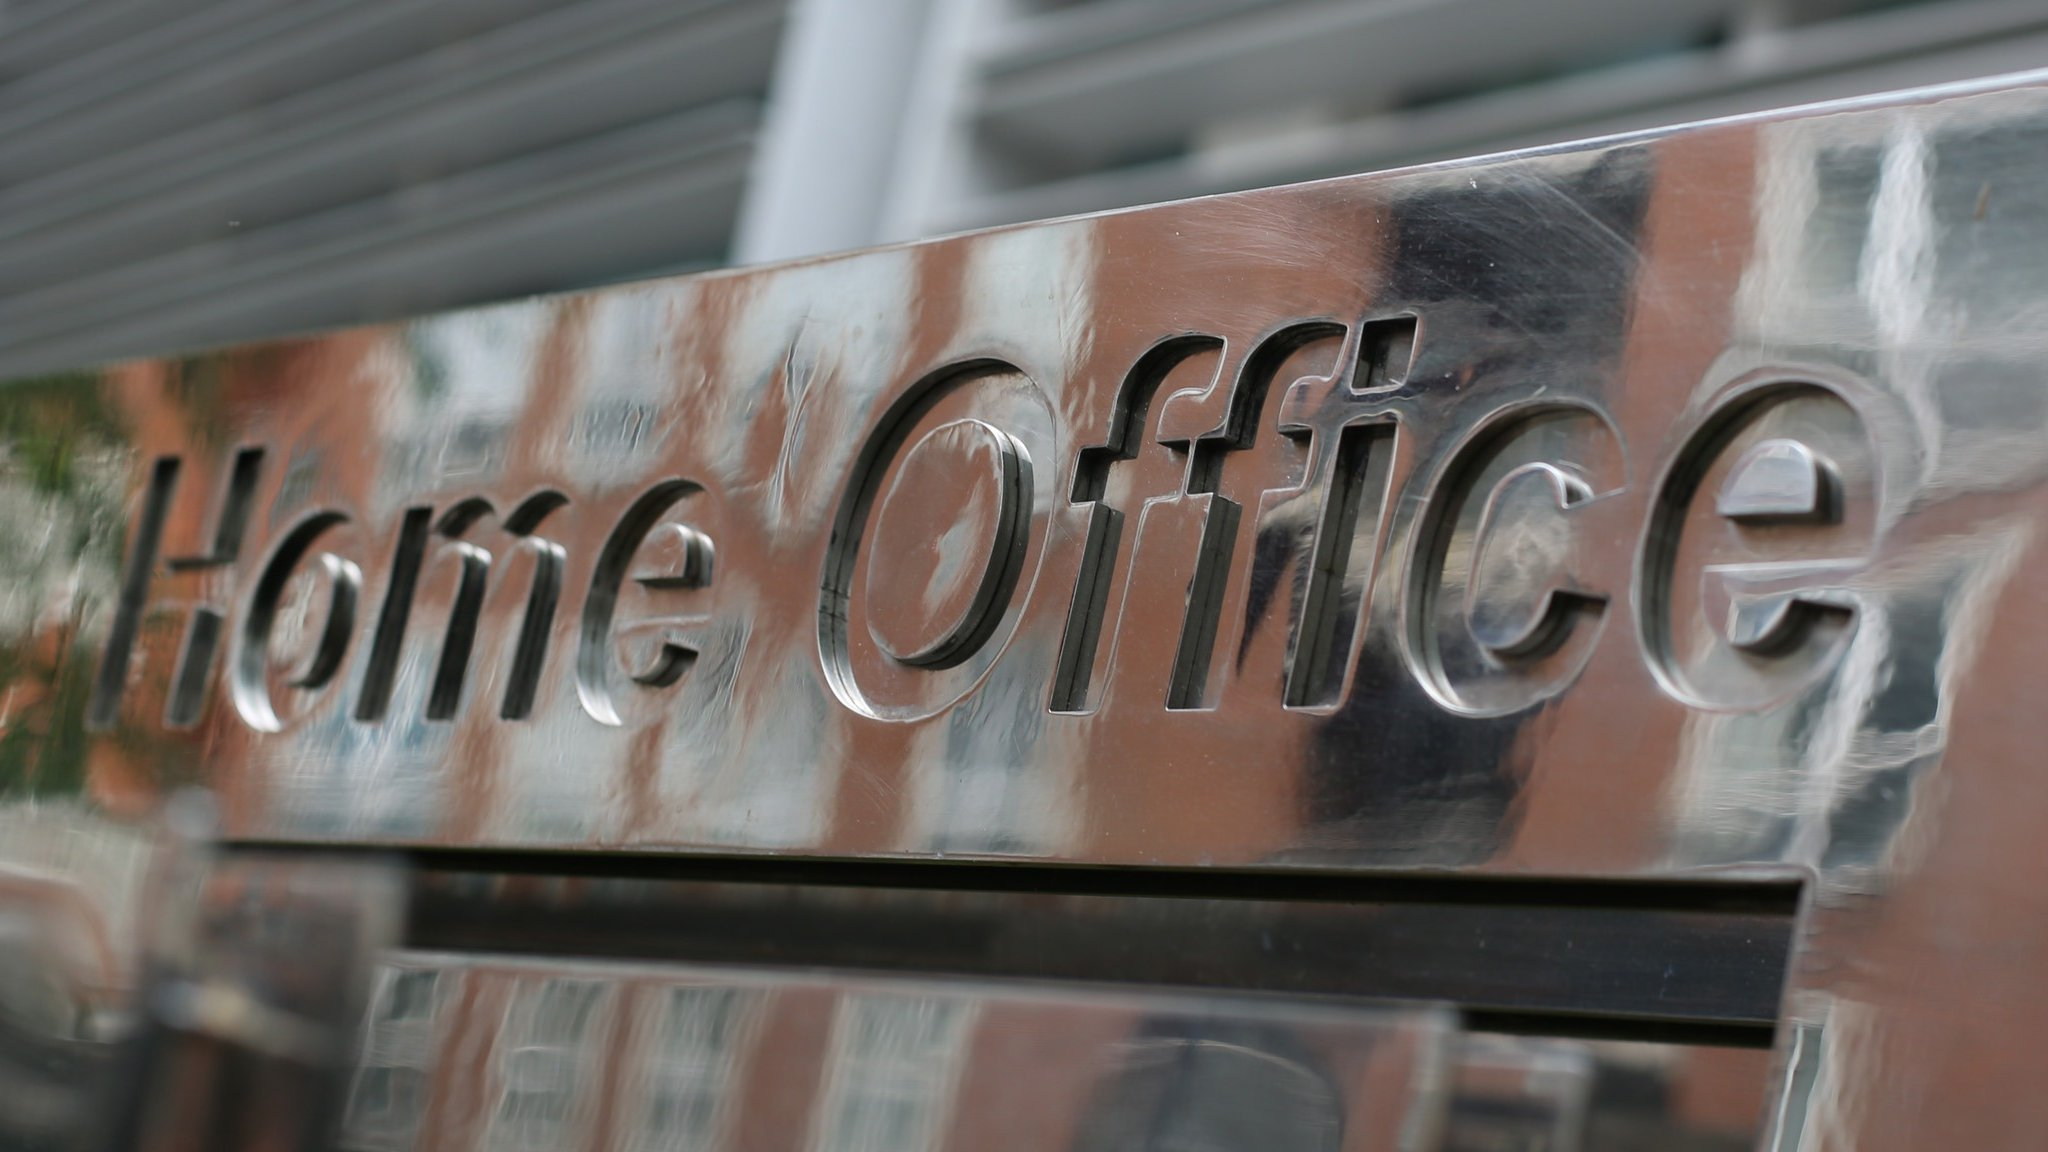 Students 'may have been unfairly deported' over English test cheat claims